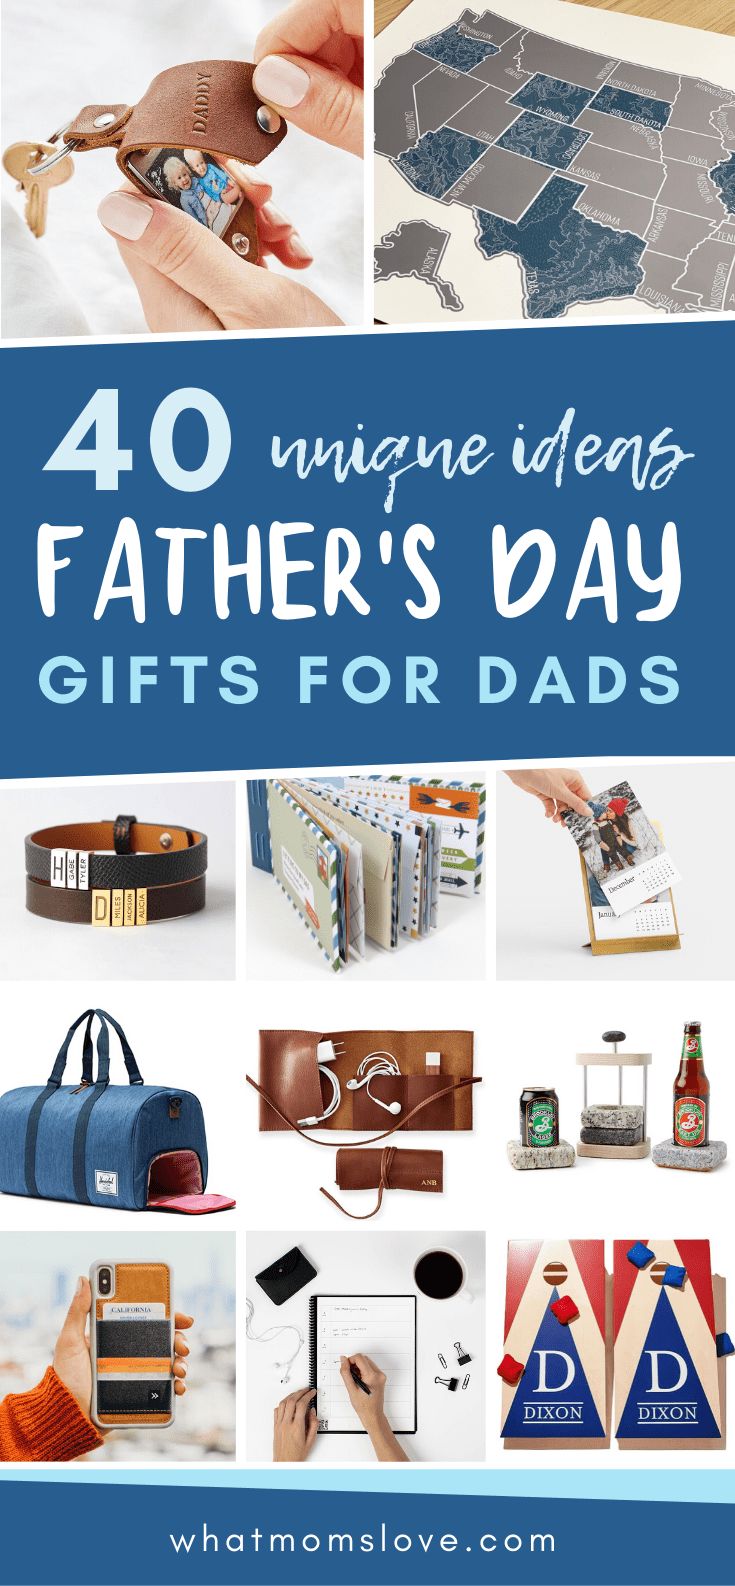 Fathers Day Unique Gift Ideas for Dad